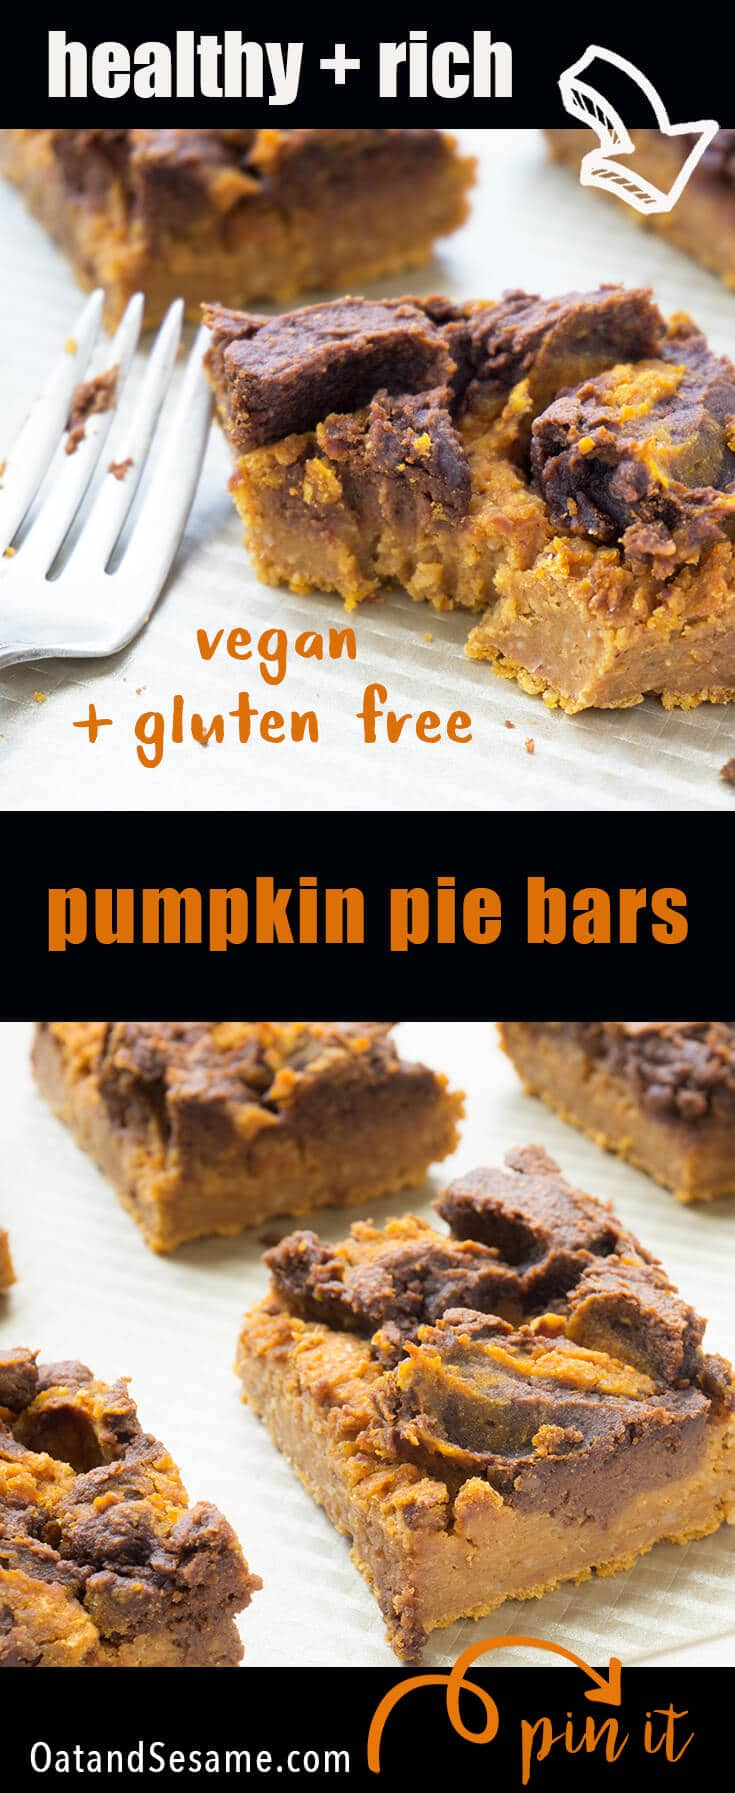 These Vegan Pumpkin Pie Bars have a chocolate peanut butter swirl topping. The inside is creamy like pumpkin pie and there isn't a lick of oil, dairy, flour or refined sugar. Just healthy ingredients like pumpkin, white beans, oats and peanut butter. #VEGAN | #PUMPKIN | #VIRTUALPUMPKINPARTY | #HEALTHY | #DESSERT | #GLUTENFREE | #Recipe at OatandSesame.com